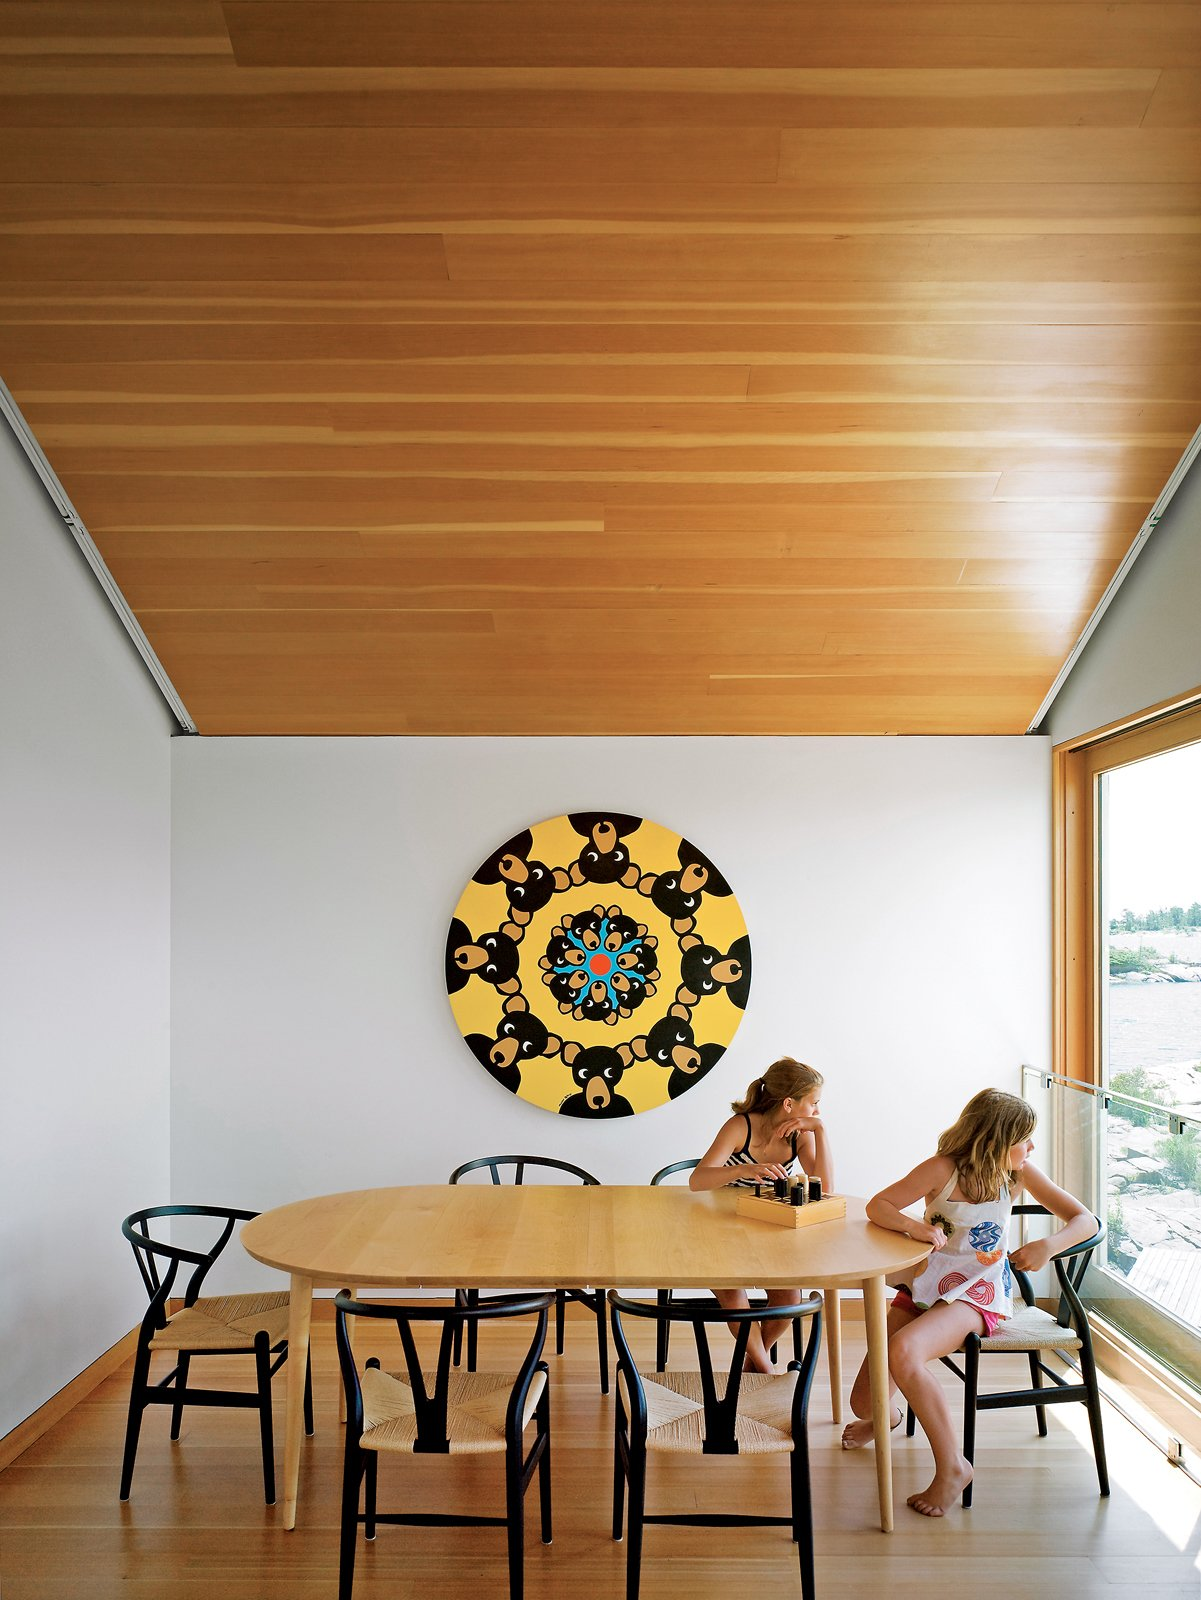 Emma Worple and a friend enjoy an open view of the island from the dining area. Tagged: Dining Room, Table, Medium Hardwood Floor, and Chair.  Photo 13 of 16 in Floating House, Lake Huron